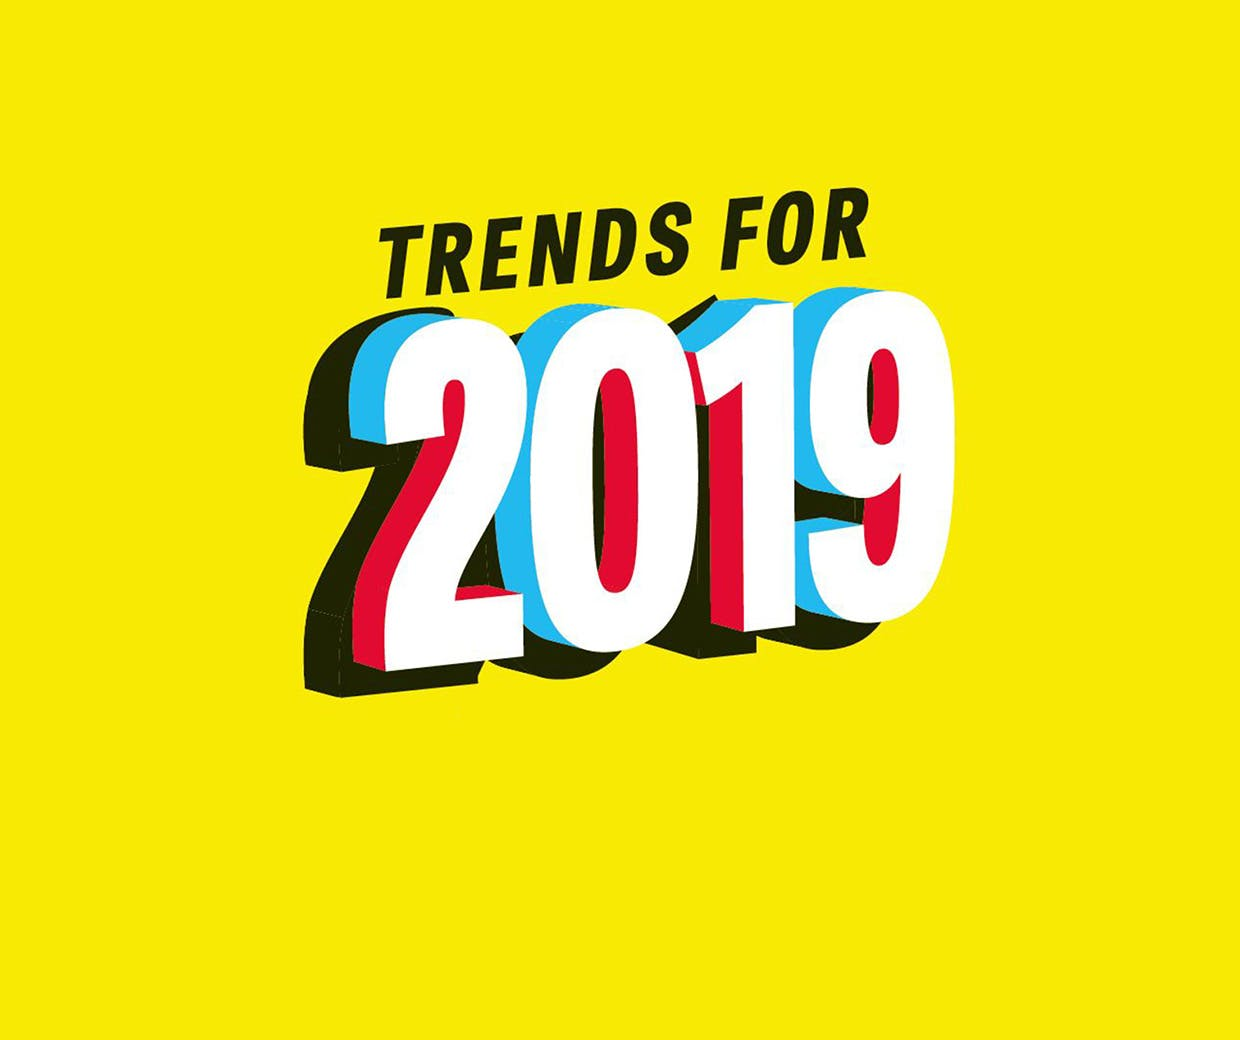 The key trends that will impact marketers' jobs in 2019